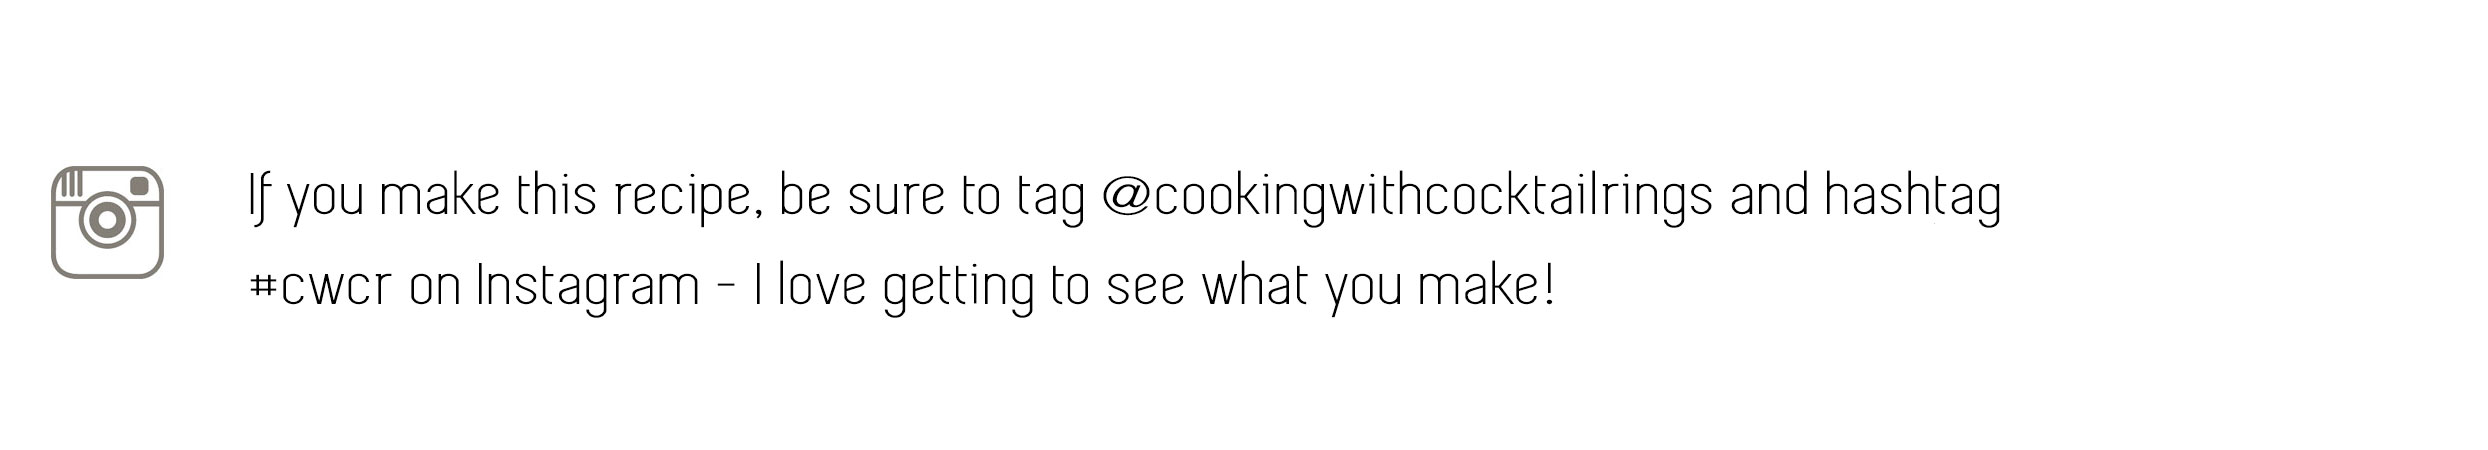 insta-hashtag-for-recipes.jpg